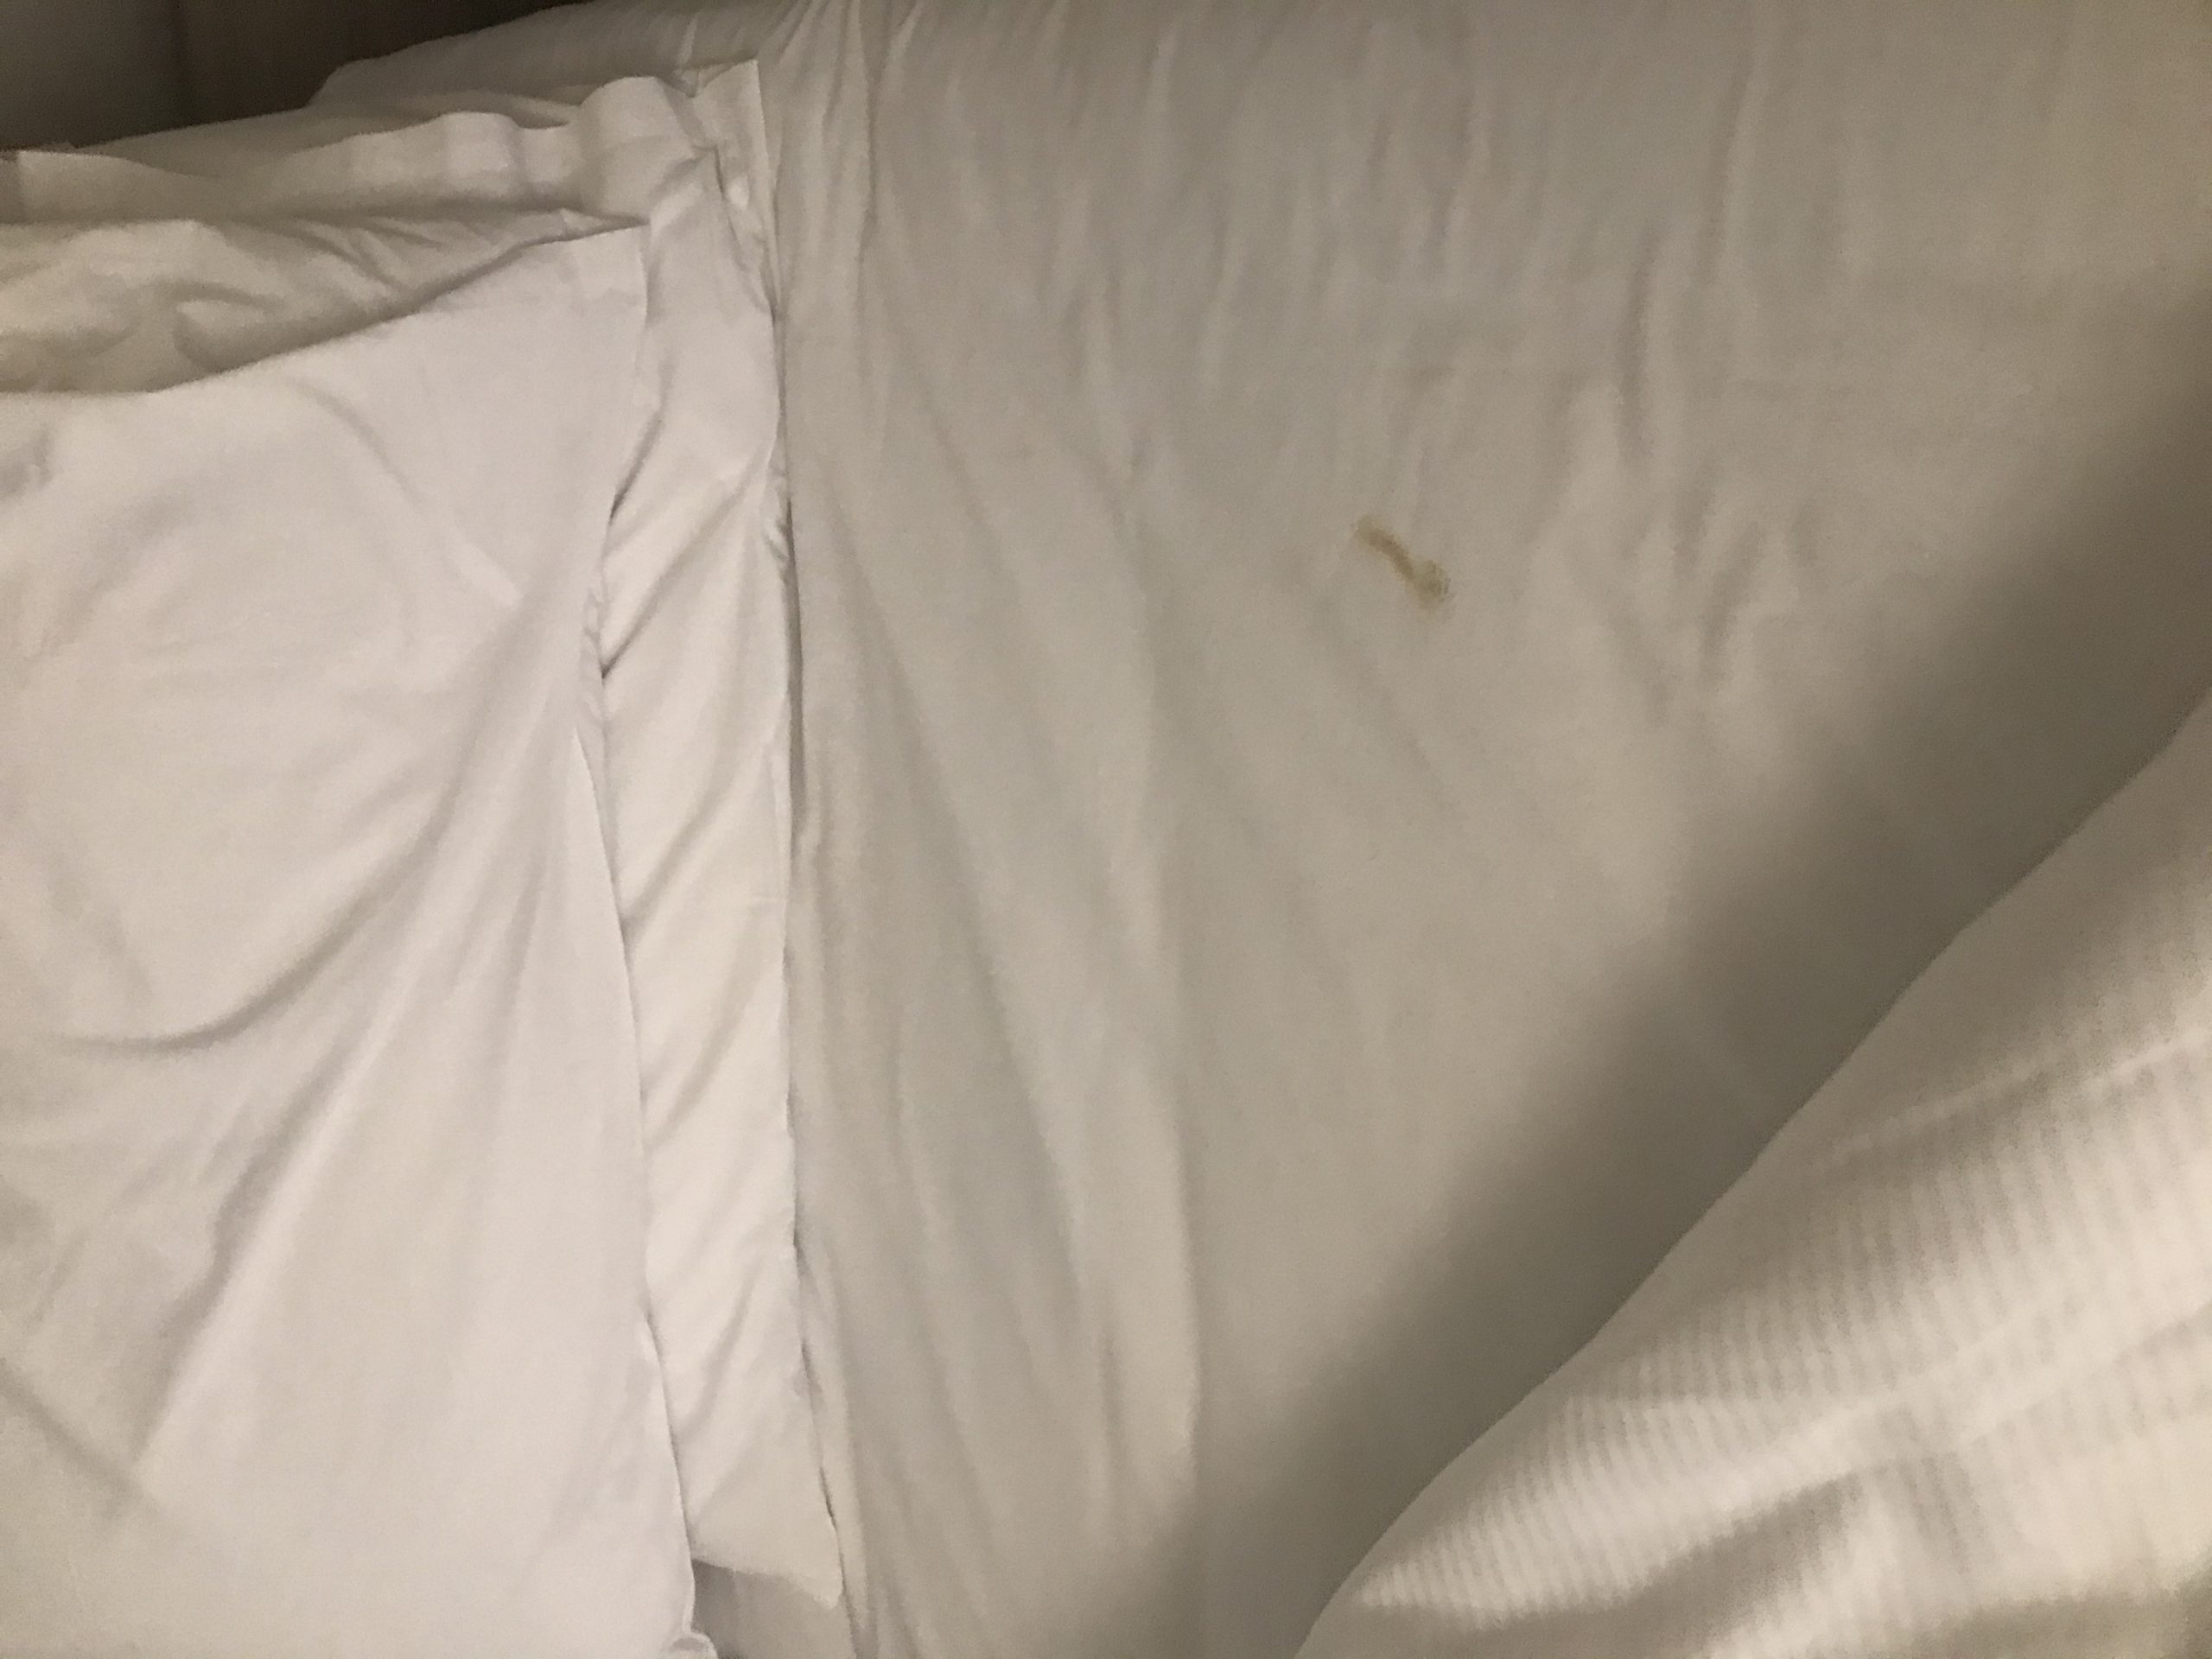 Brown mark on white sheet when I pulled back the bedding